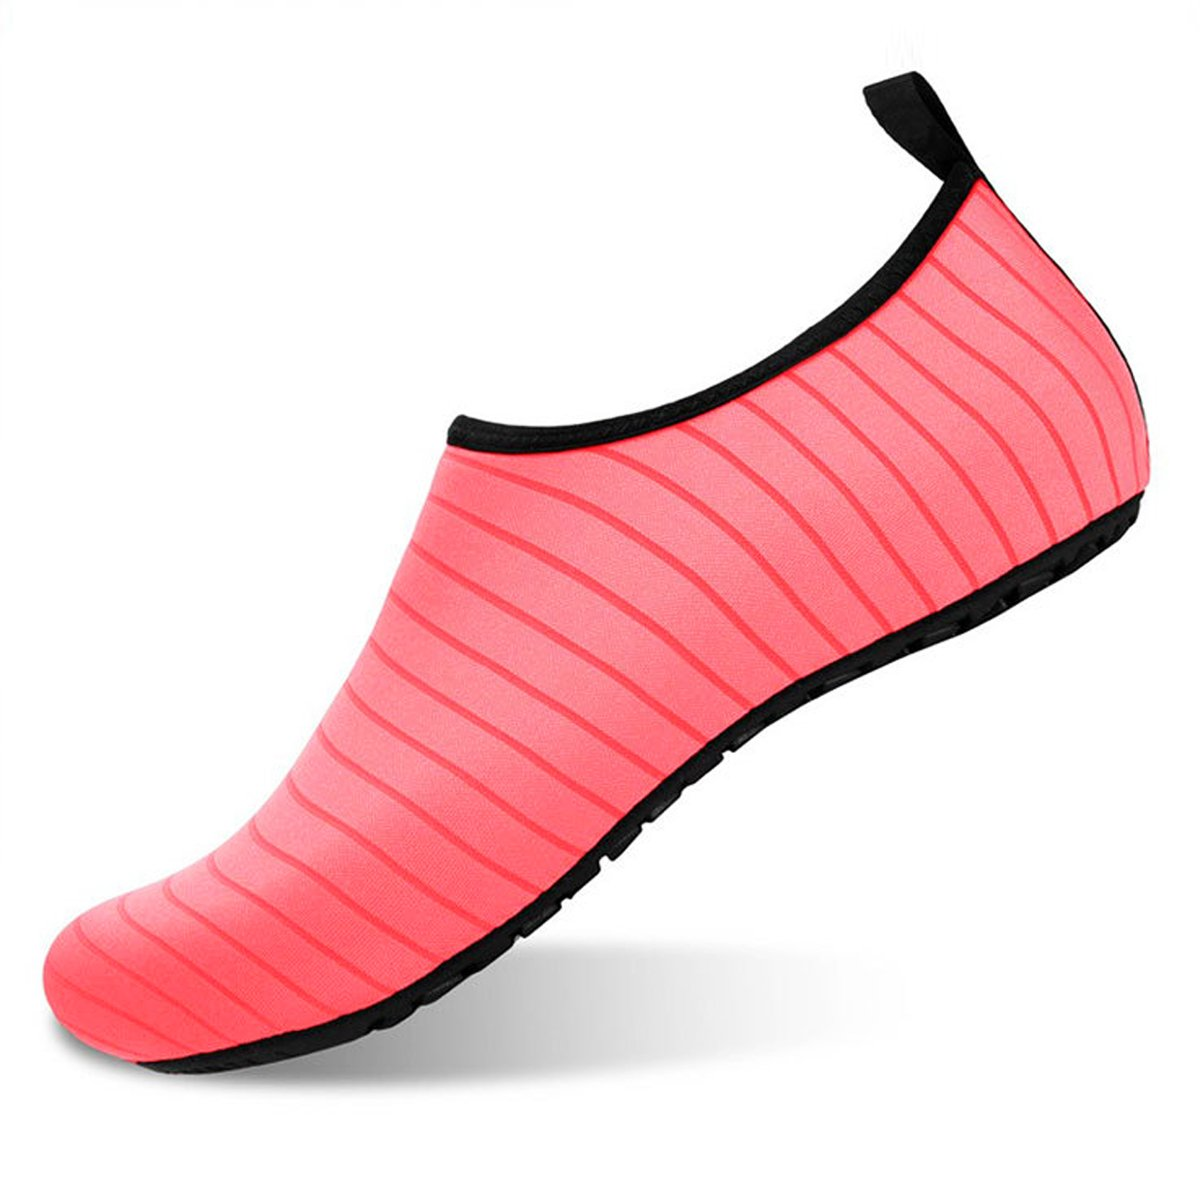 Men Women Water Shoes Quick-Dry Barefoot Aqua Socks Shoes for Swim Beach Pool Surf Yoga Sport, US Women:11-12/Men:9.5-10.5 = 10.24 in/26 cm, Pink